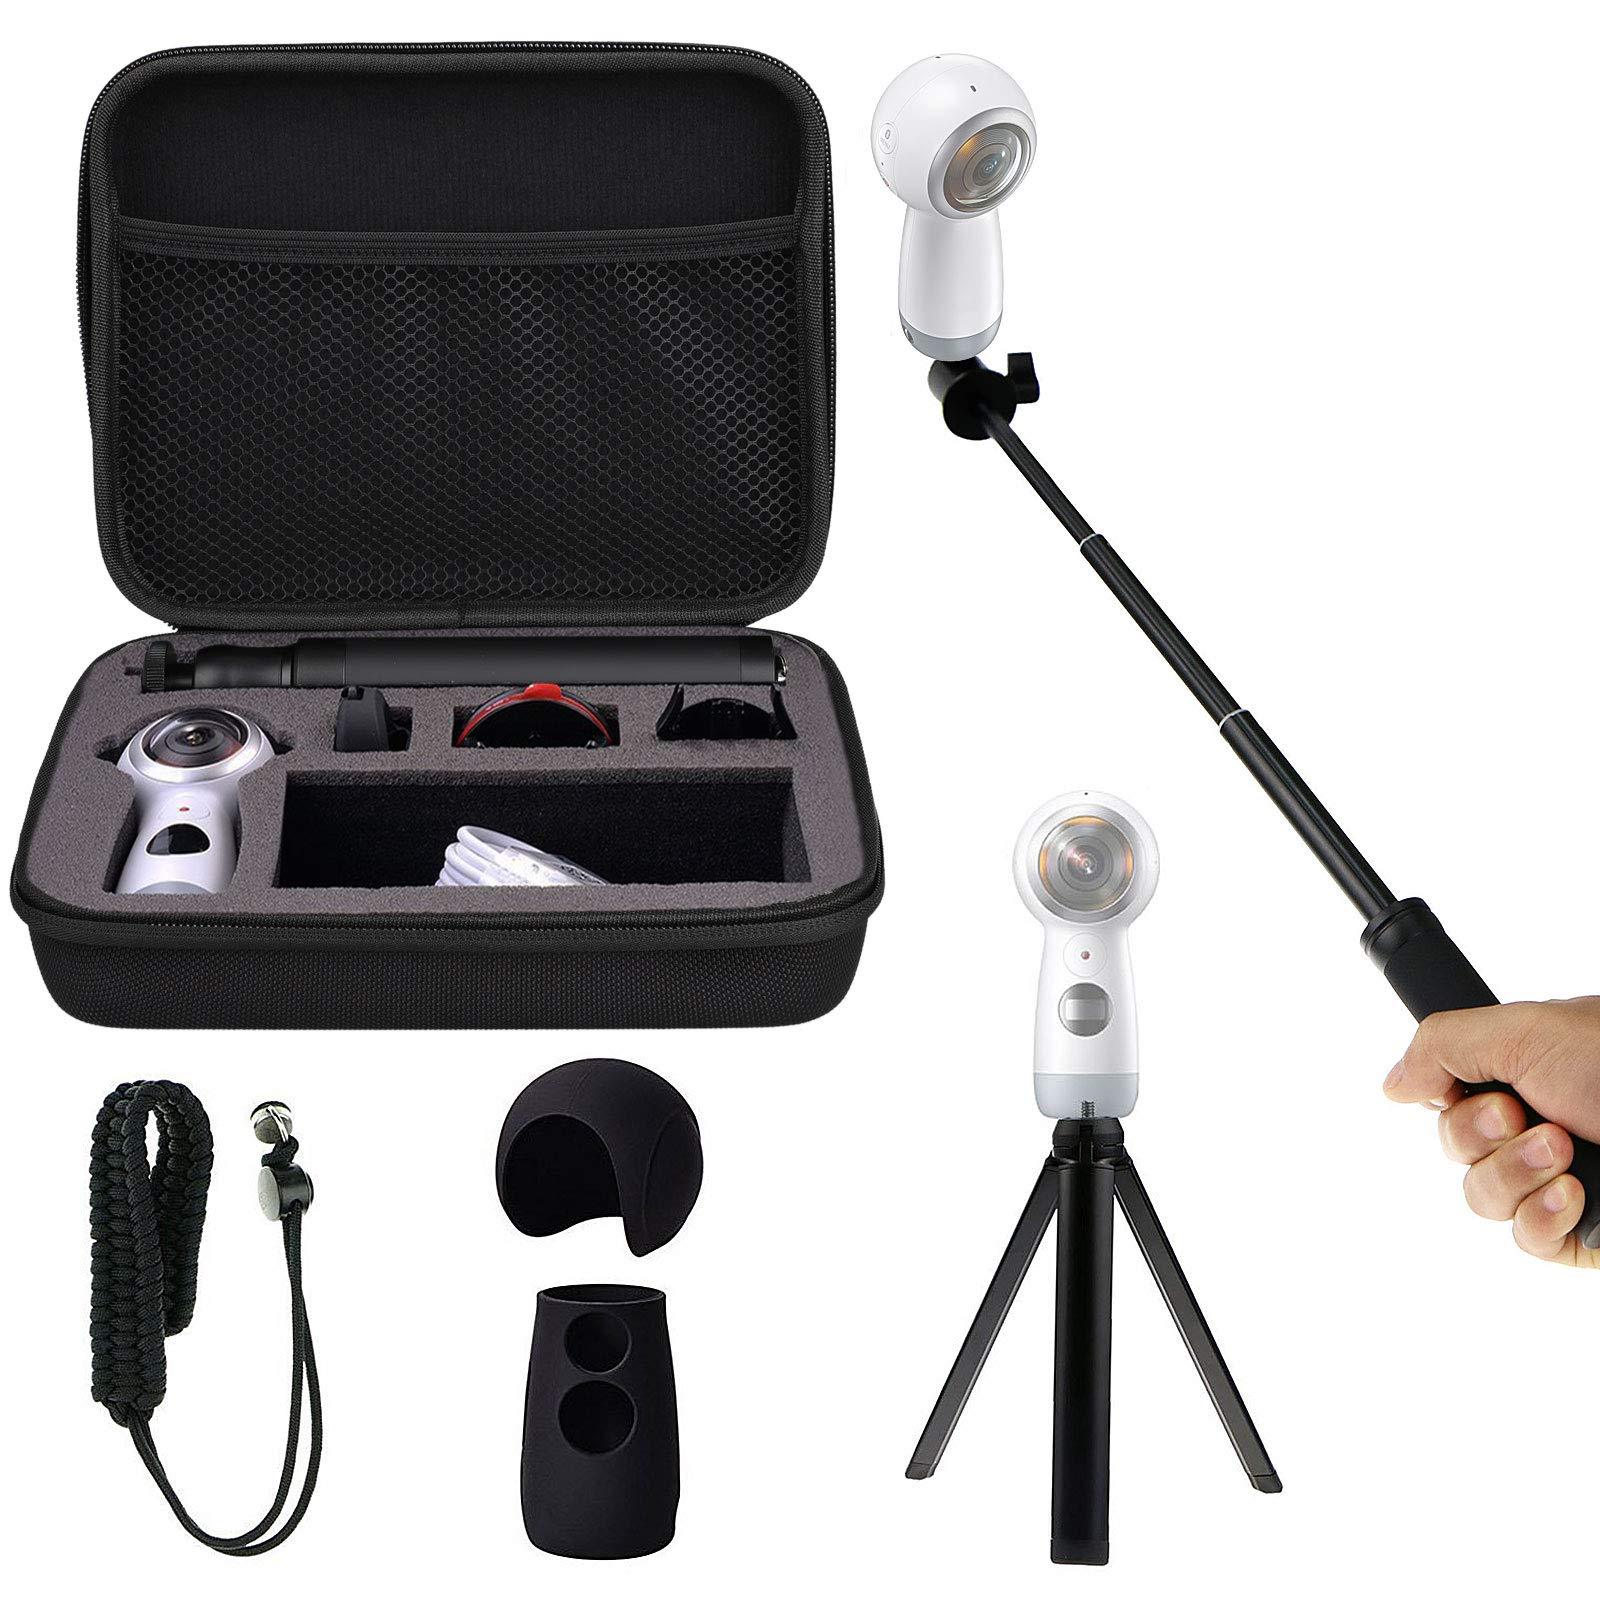 Shockproof Protective Carrying Case, Selfie Stick Monopod, Mini Tripod Stand, Soft Silicone Skin, Wrist Strap for Samsung Gear 360 2017, EEEKit All in One Accessory Kit (All in 1 Kit for 2017 Edition) by EEEKit (Image #1)